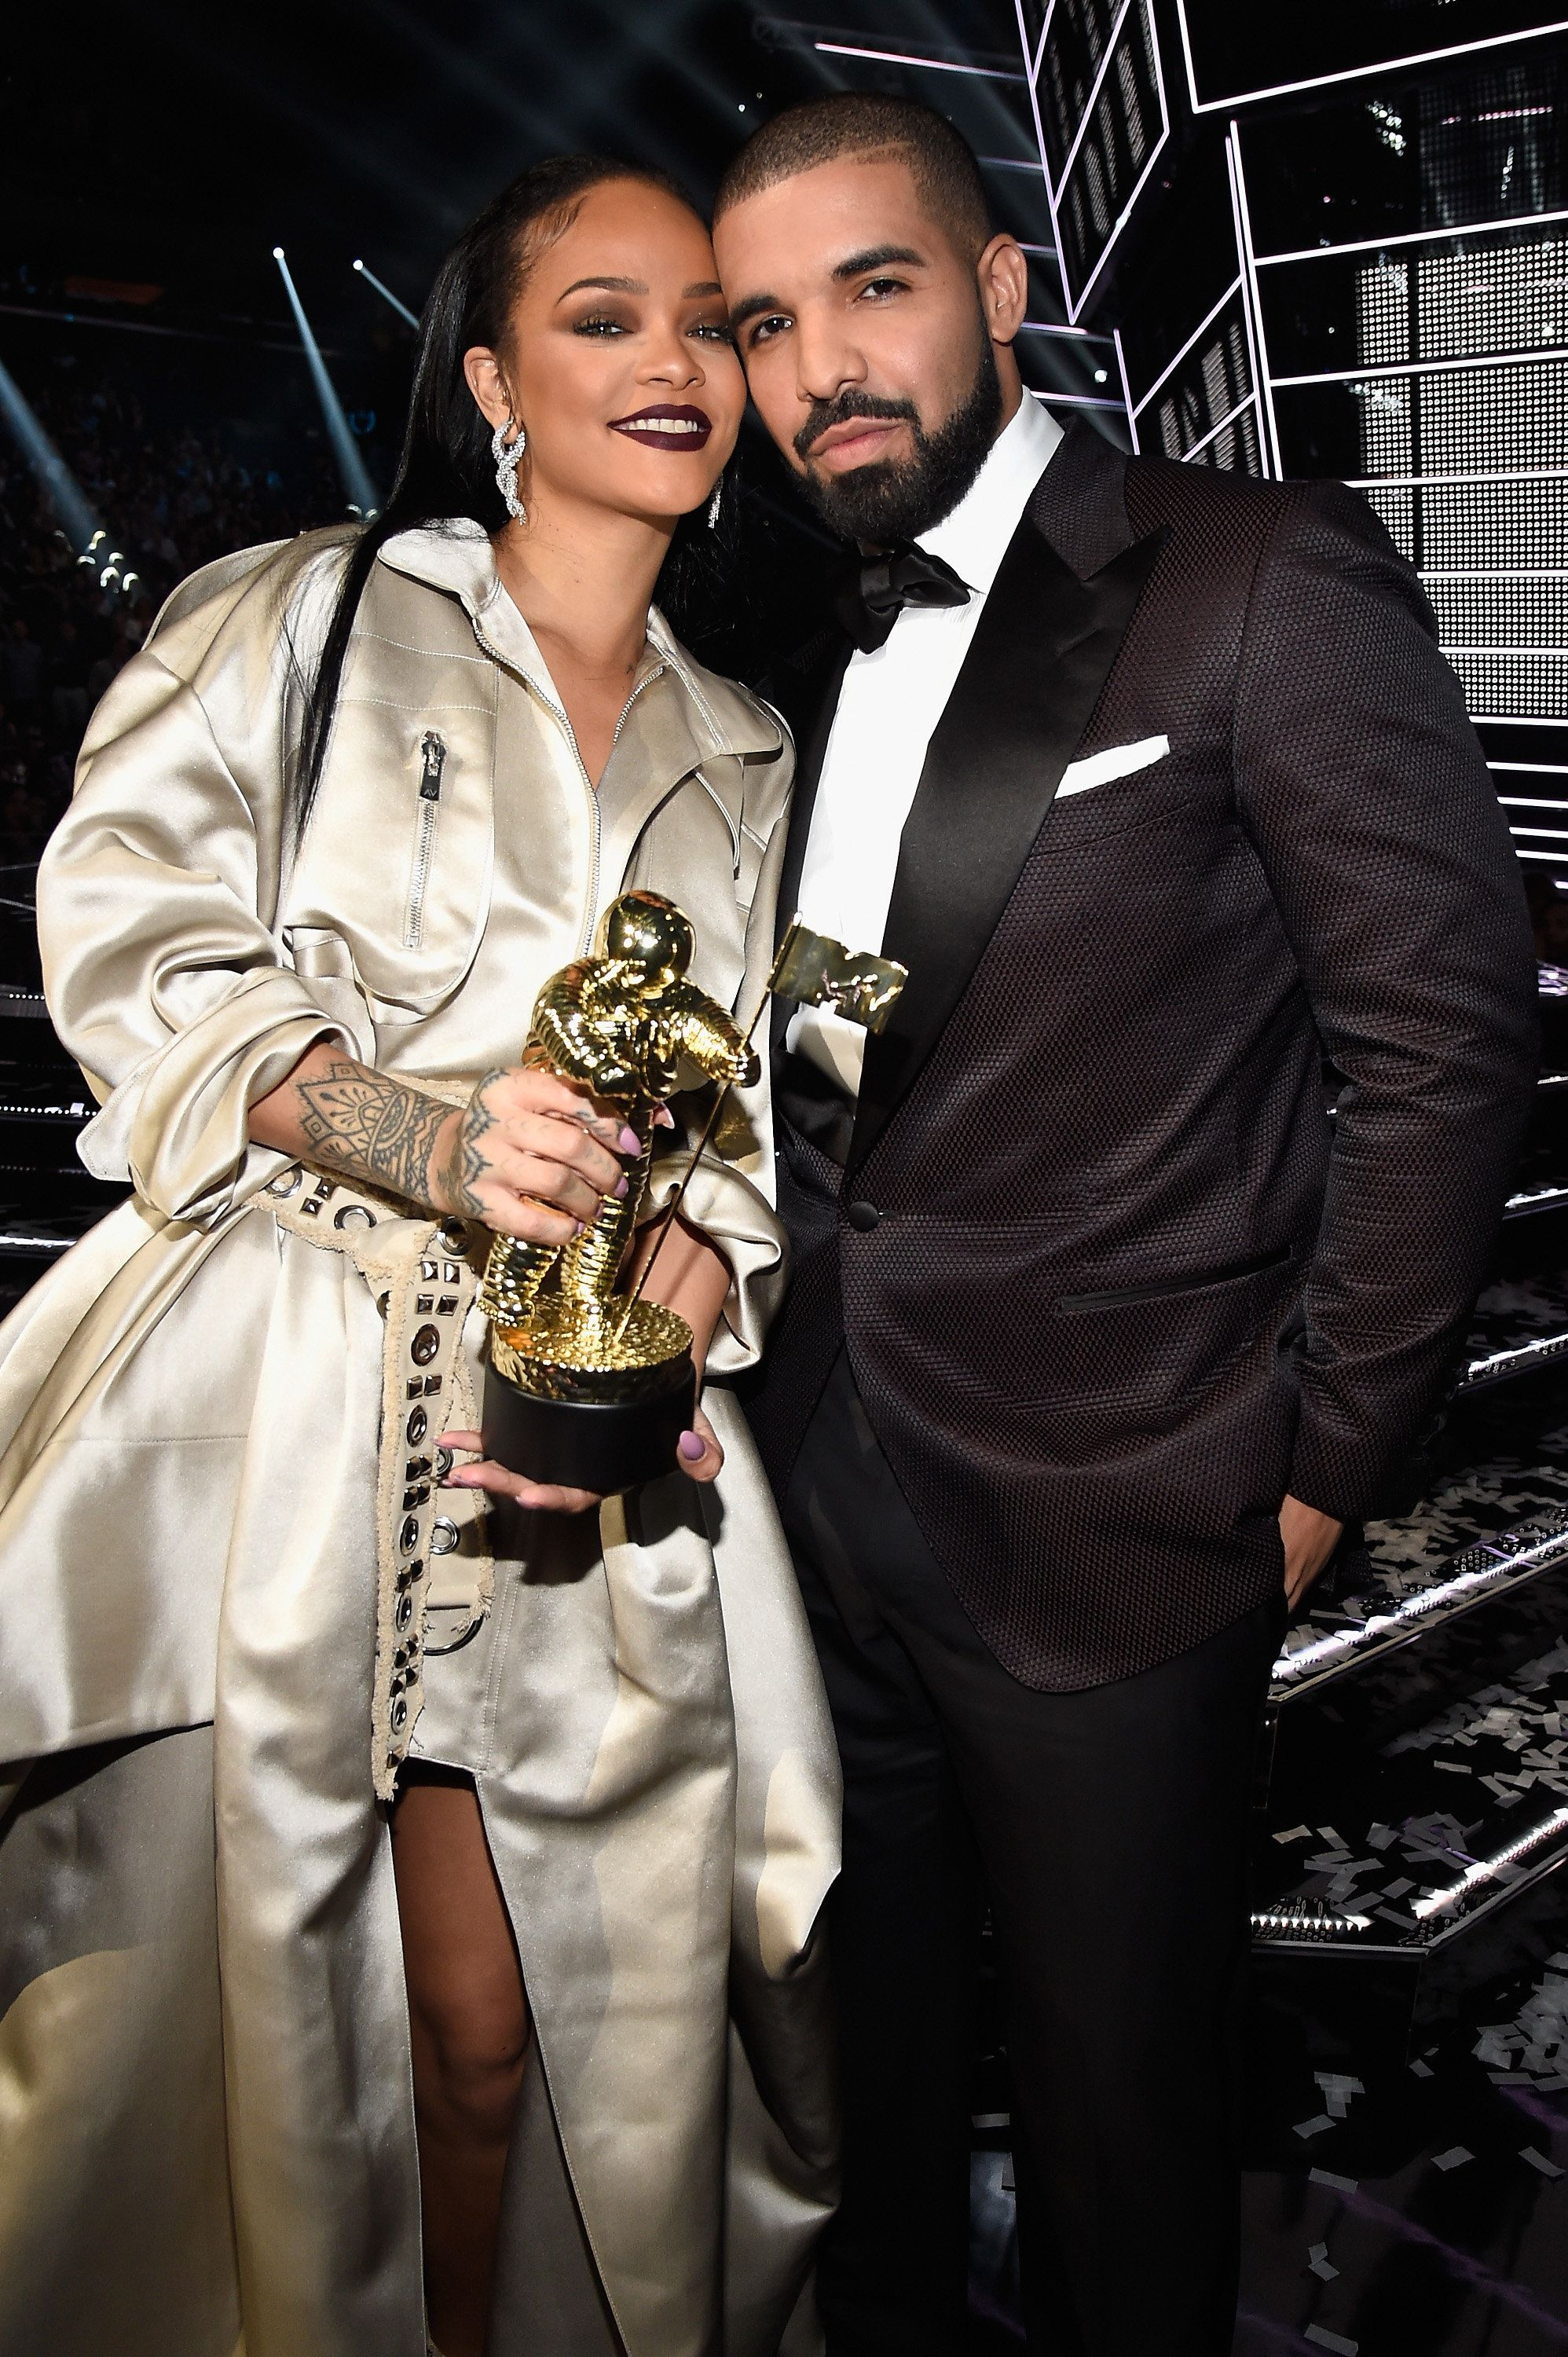 Rihanna and rapper Drake pose onstage during the 2016 MTV Video Music Awards